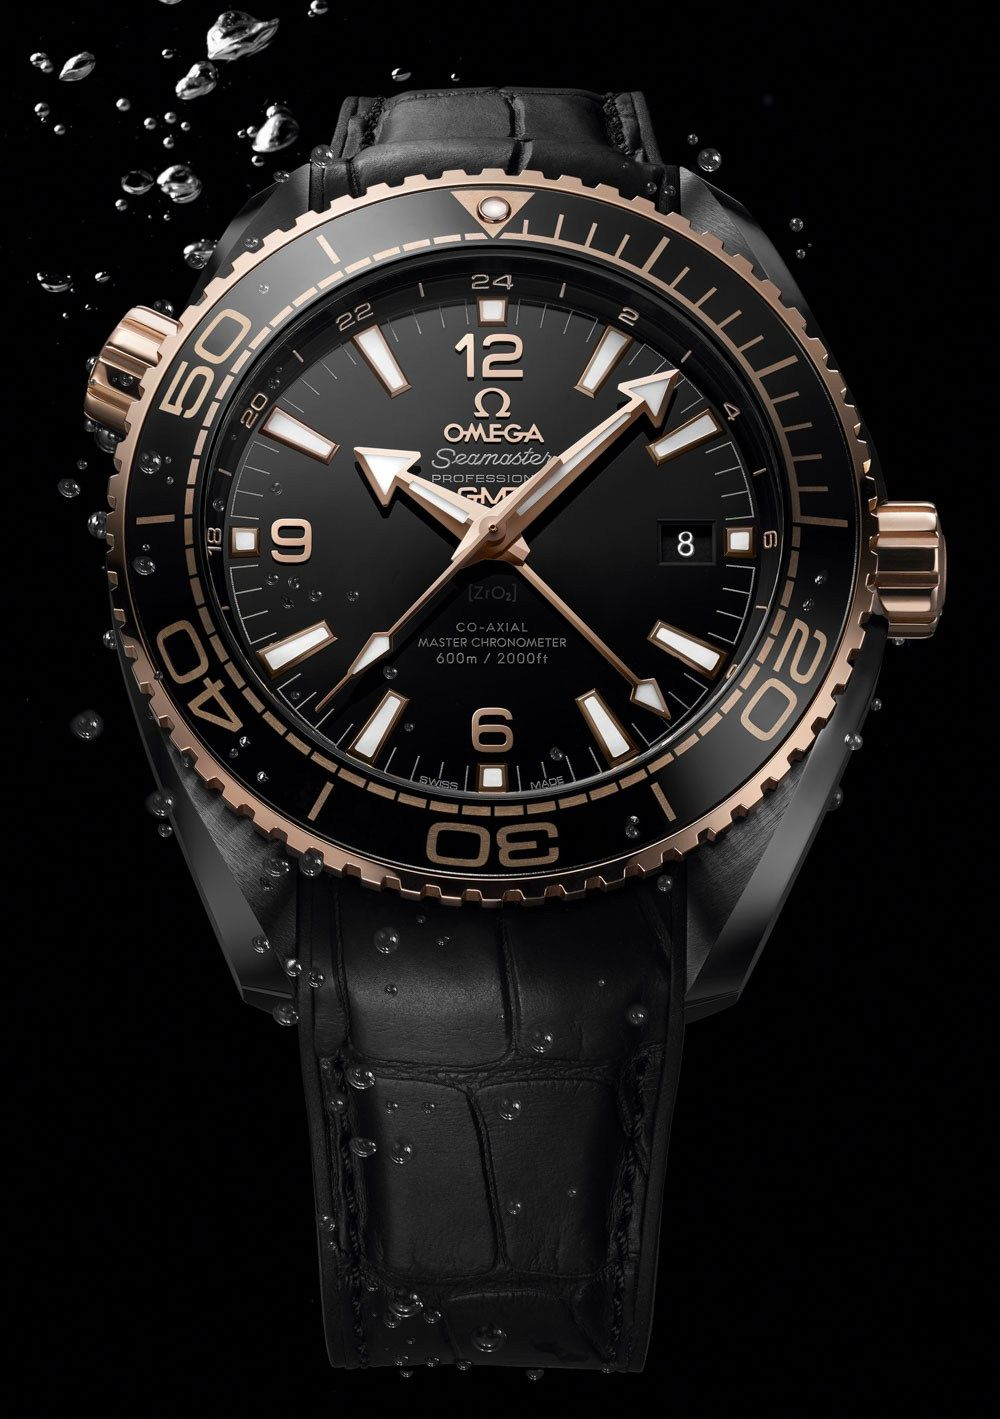 Omega Seamaster Aqua Terra James Bond Limited Edition Like New Available Now For 4 600 Omega Seamaster Luxury Watches For Men Watches For Men